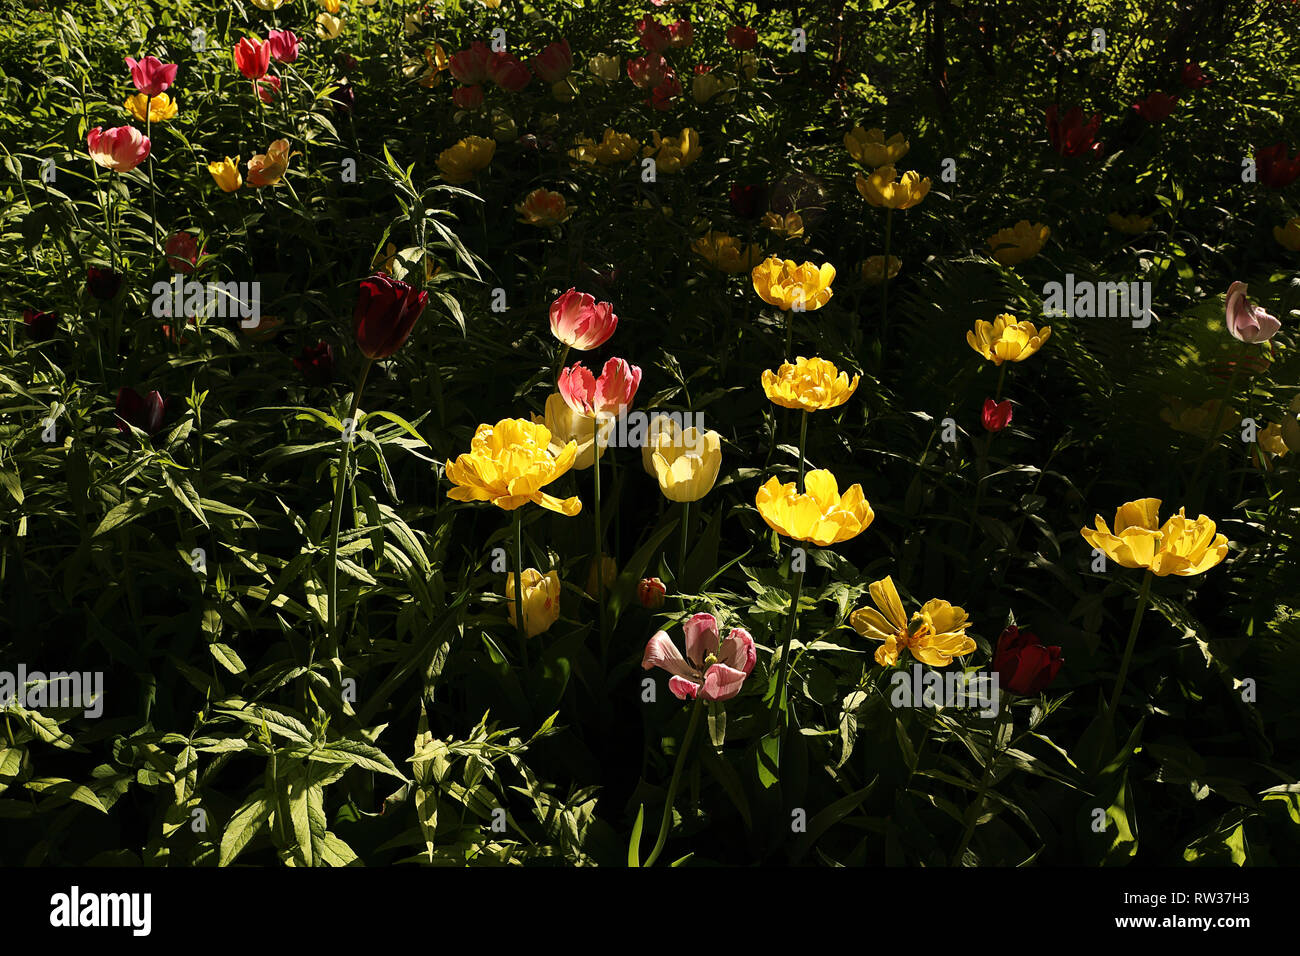 Colorful Tulip Flowers Blooming In The Spring Garden Dark Floral